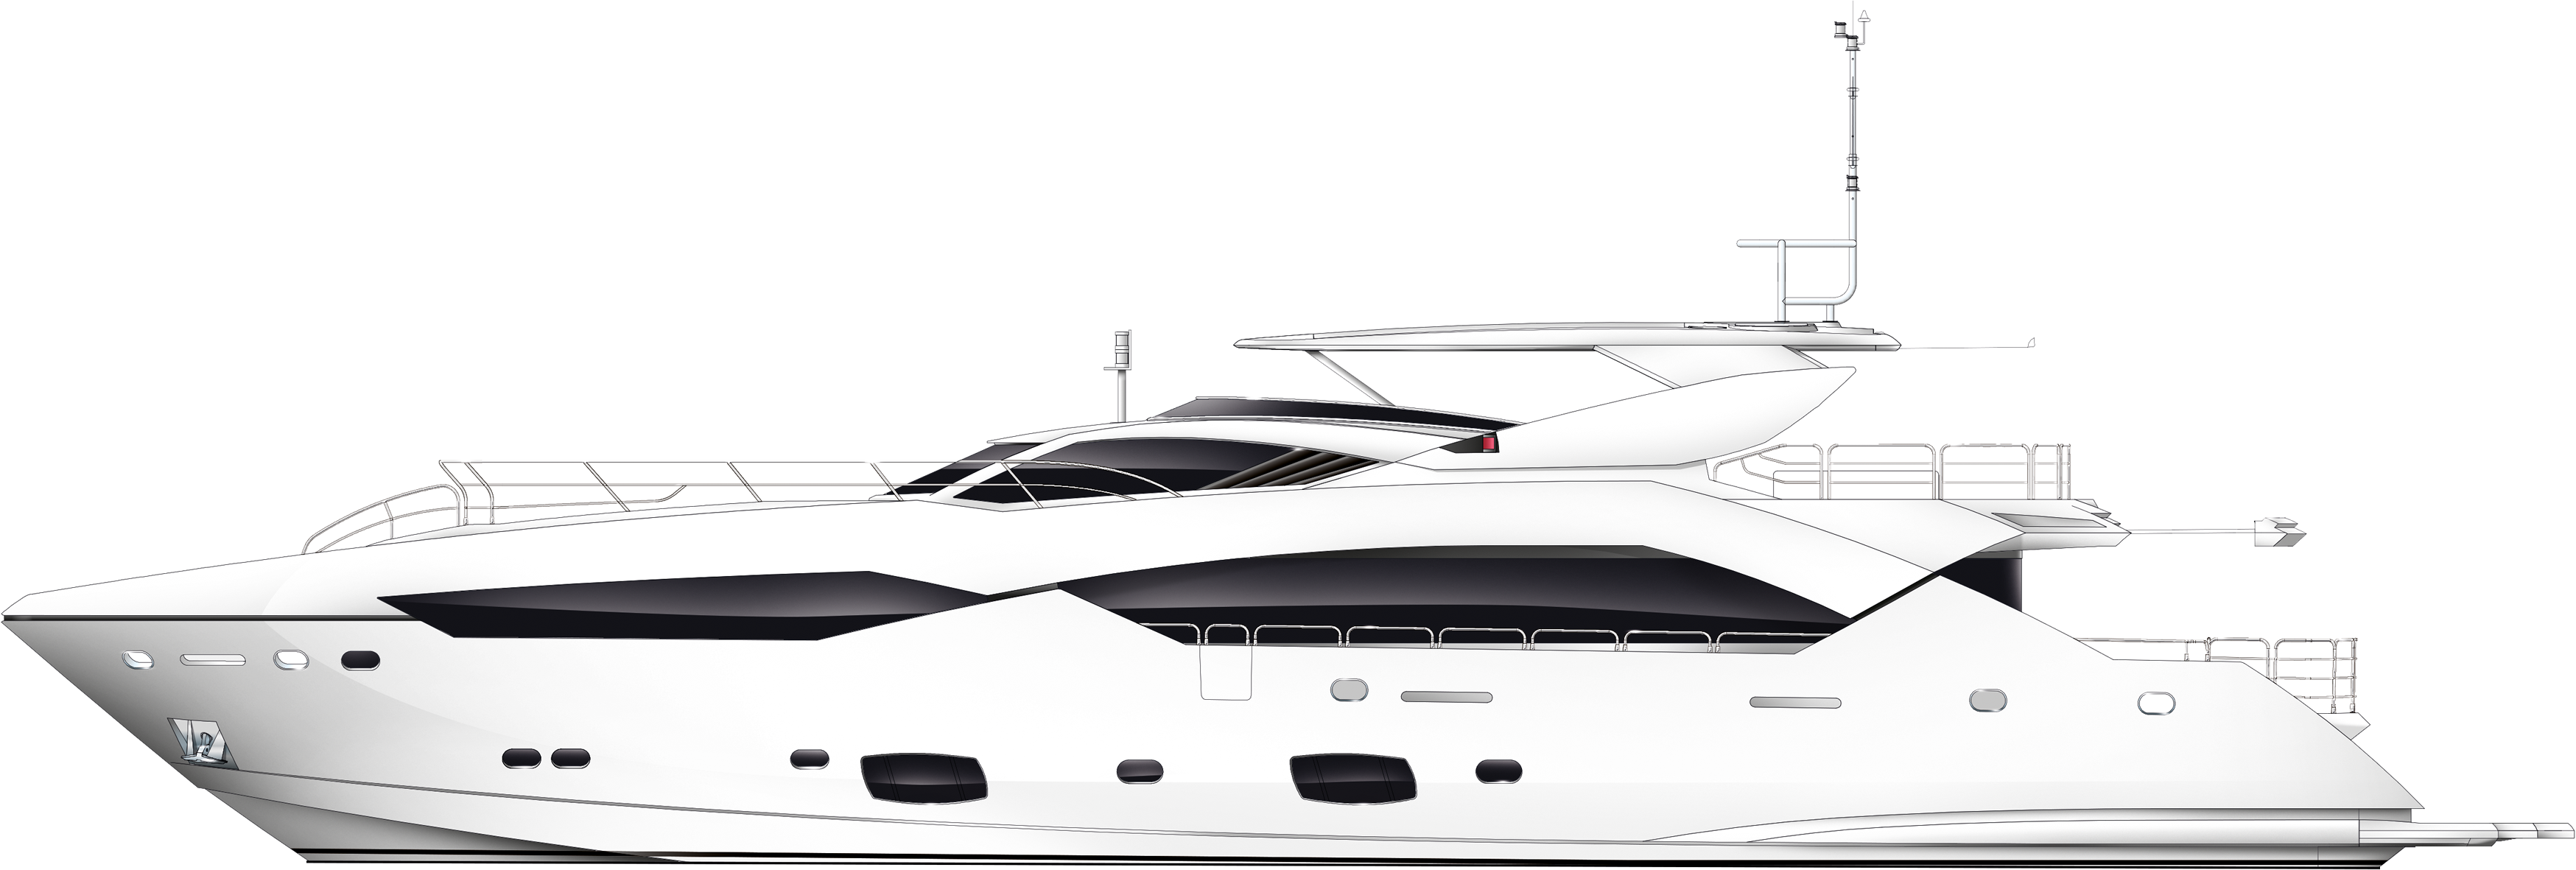 Download Yacht PNG Image for Free